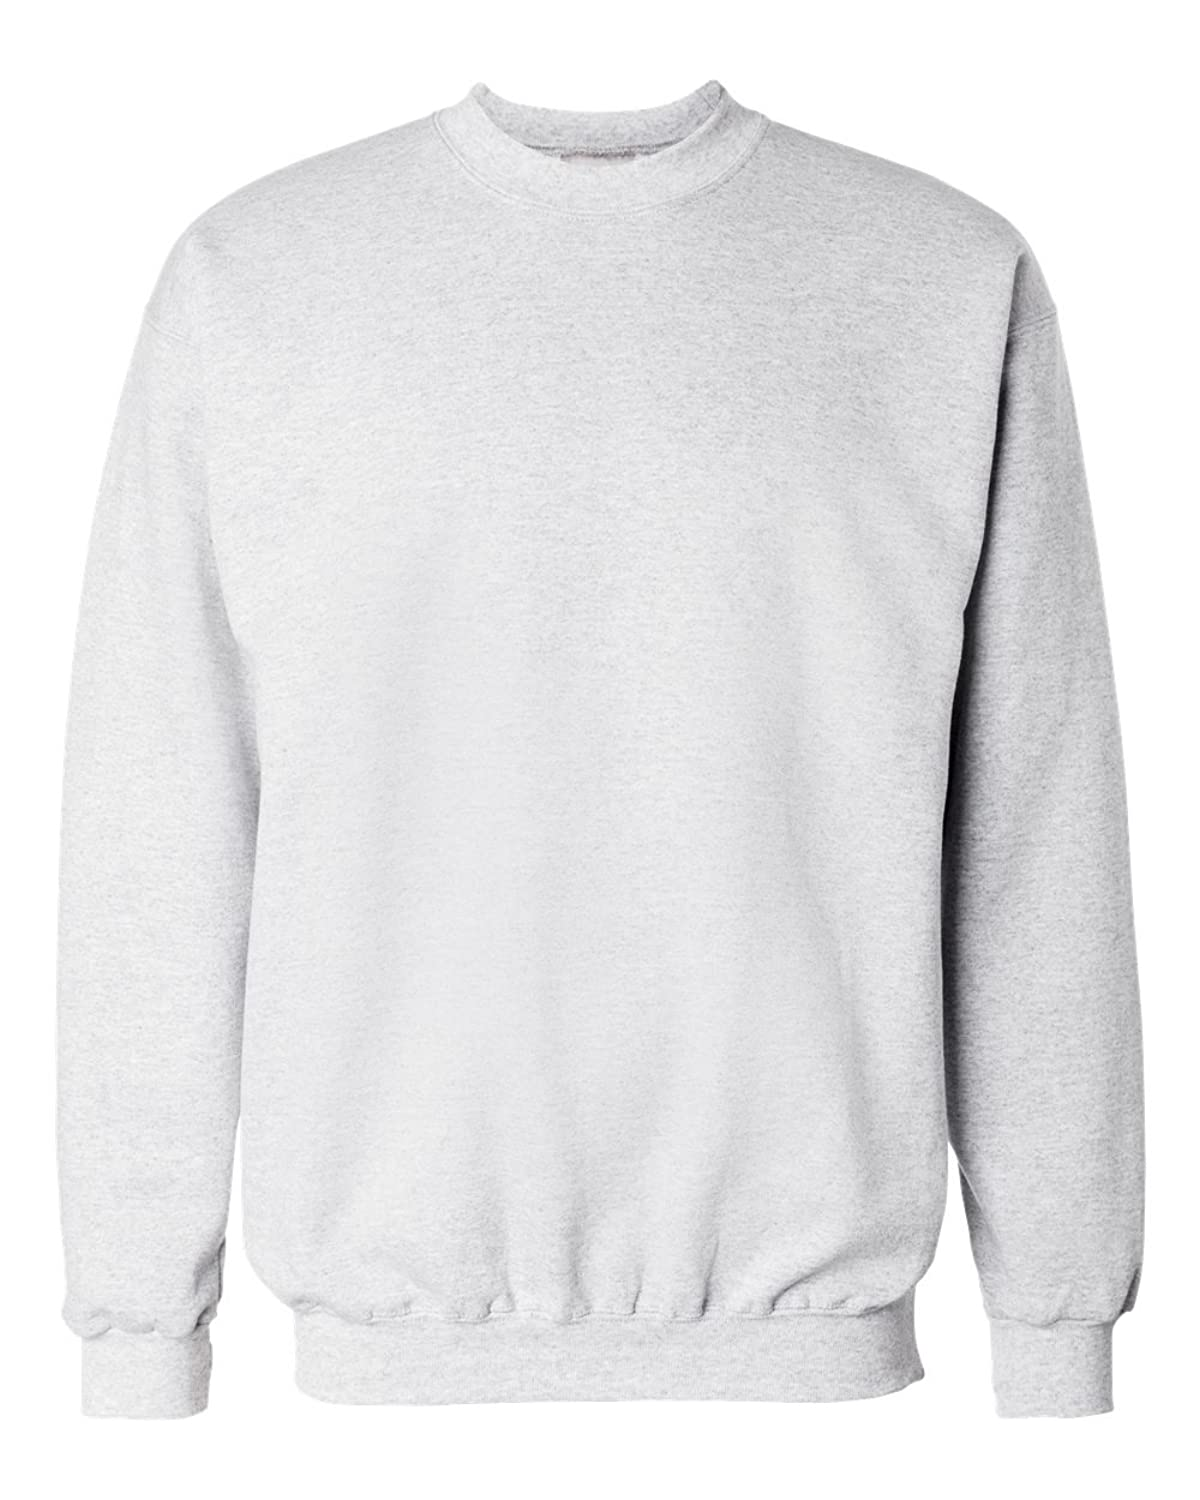 Hanes Men's Ultimate Cotton Fleece Crew at Amazon Men's Clothing ...